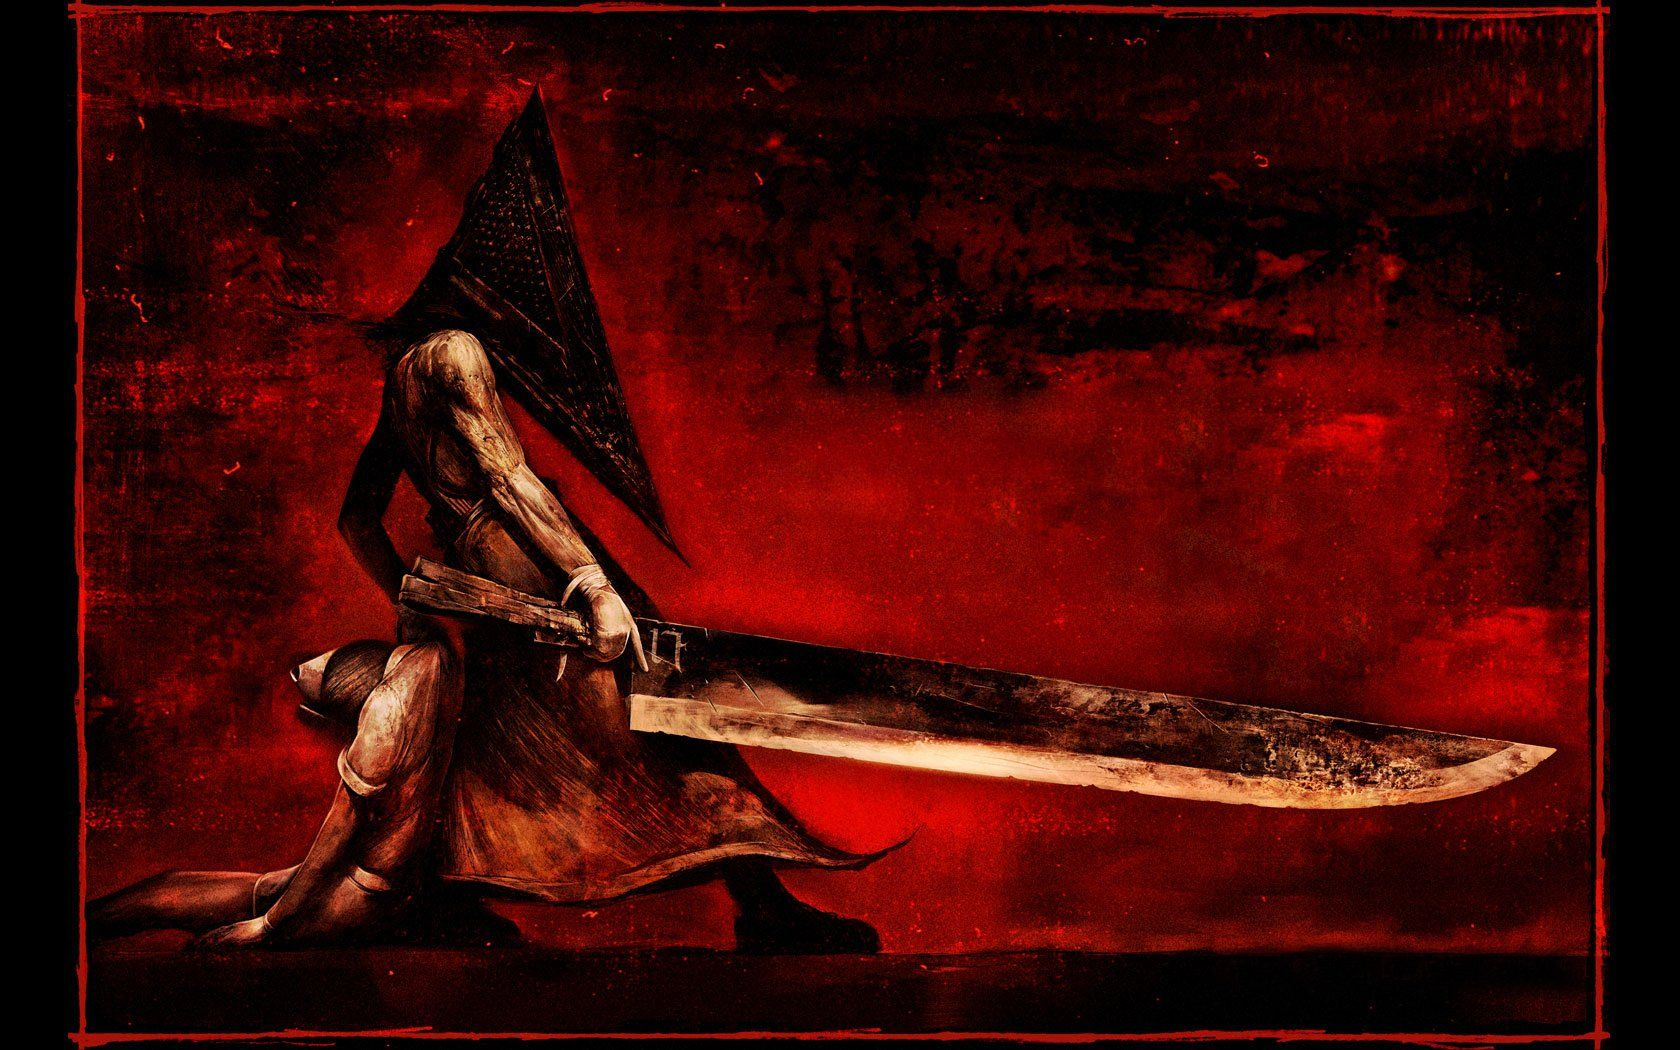 1680x1050 Silent Hill Wallpaper Background Image View Download Comment And Rate Wallpaper Abyss In 2020 Silent Hill Pyramid Head Silent Hill 2